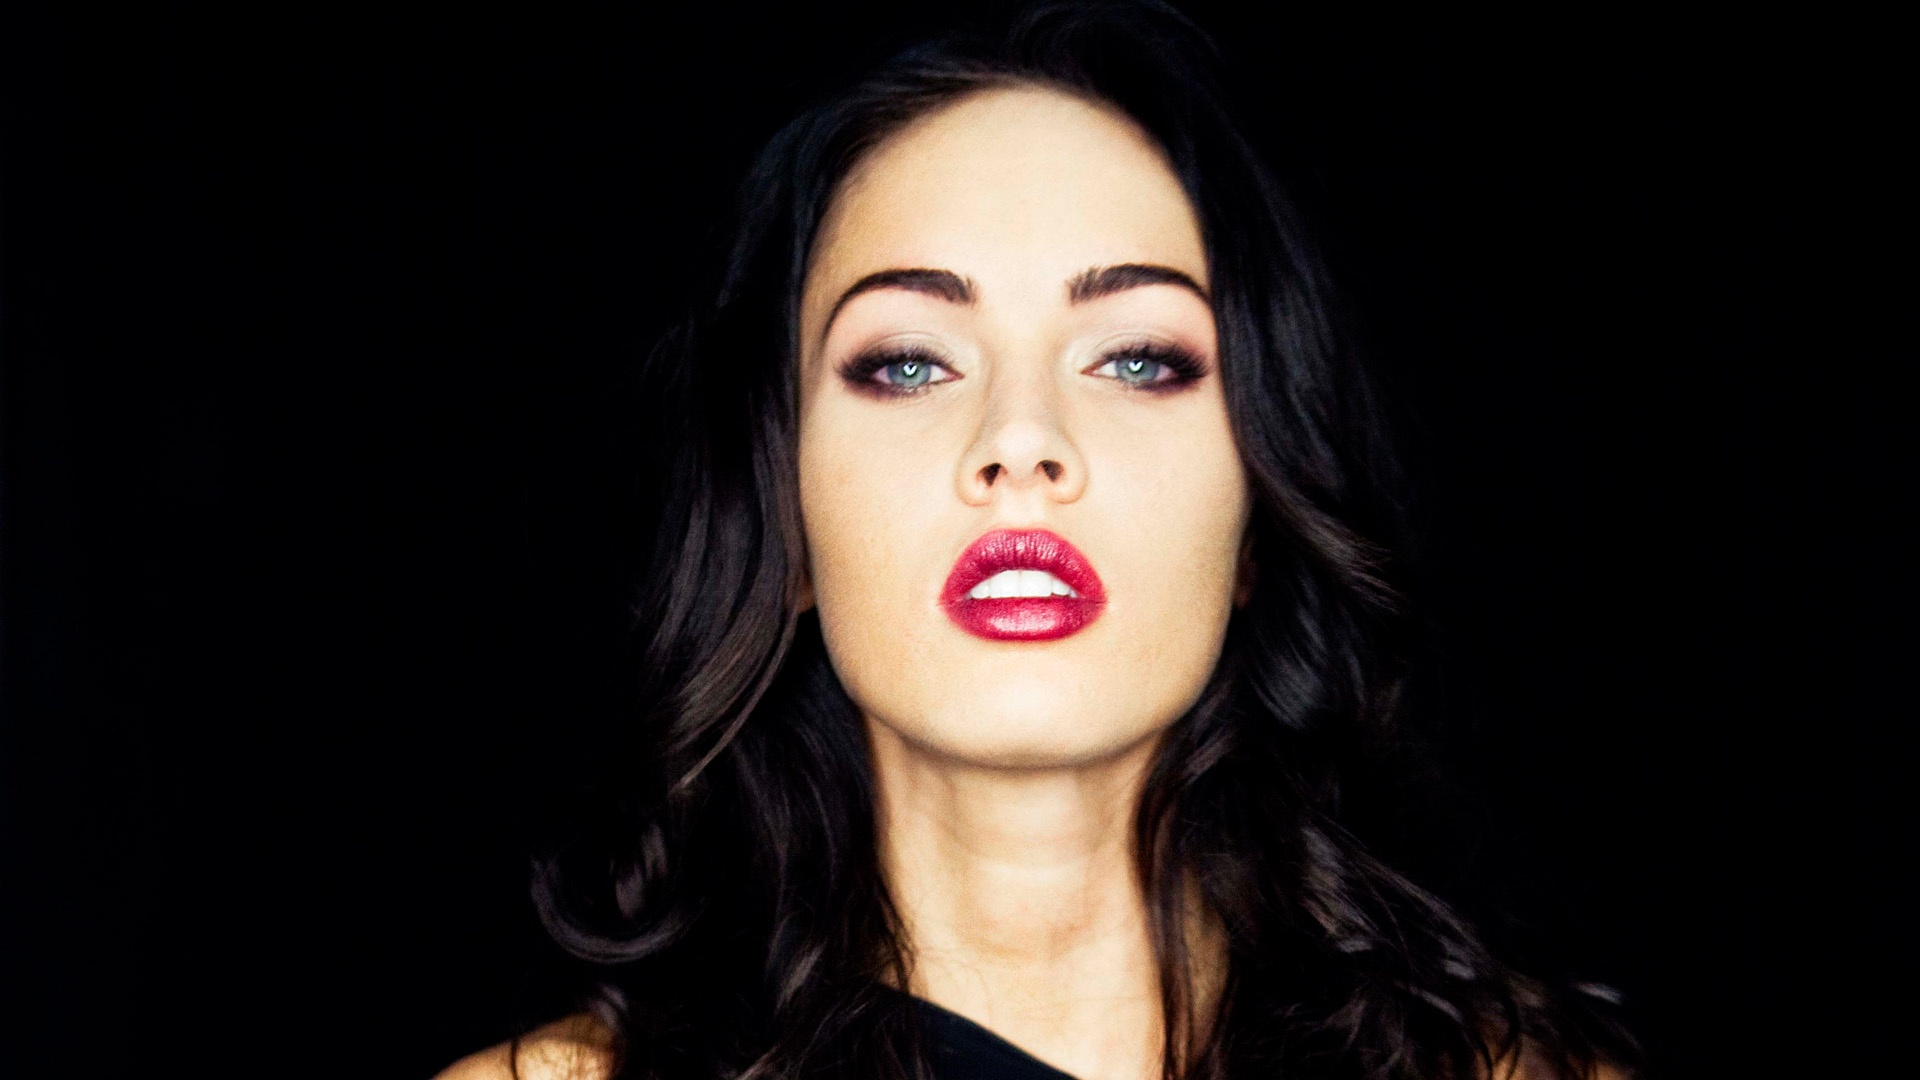 Megan Fox Wallpapers Wallpapers High Quality Download Free